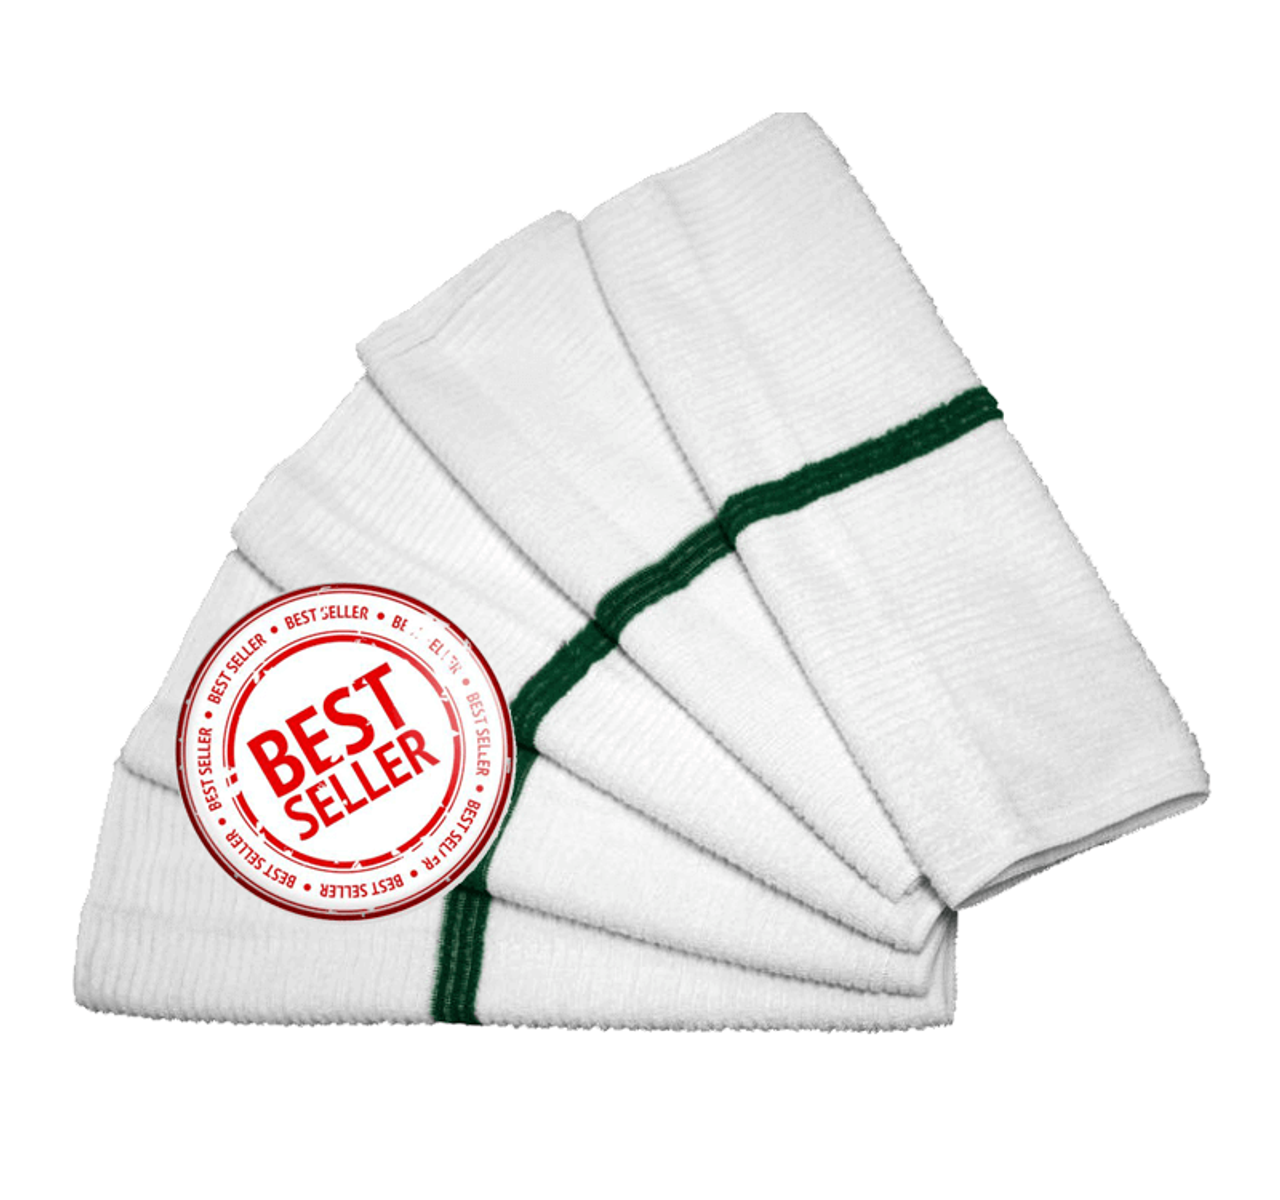 100 terry cloth 100/% cotton cleaning towels shop bar rags 12x12 1#